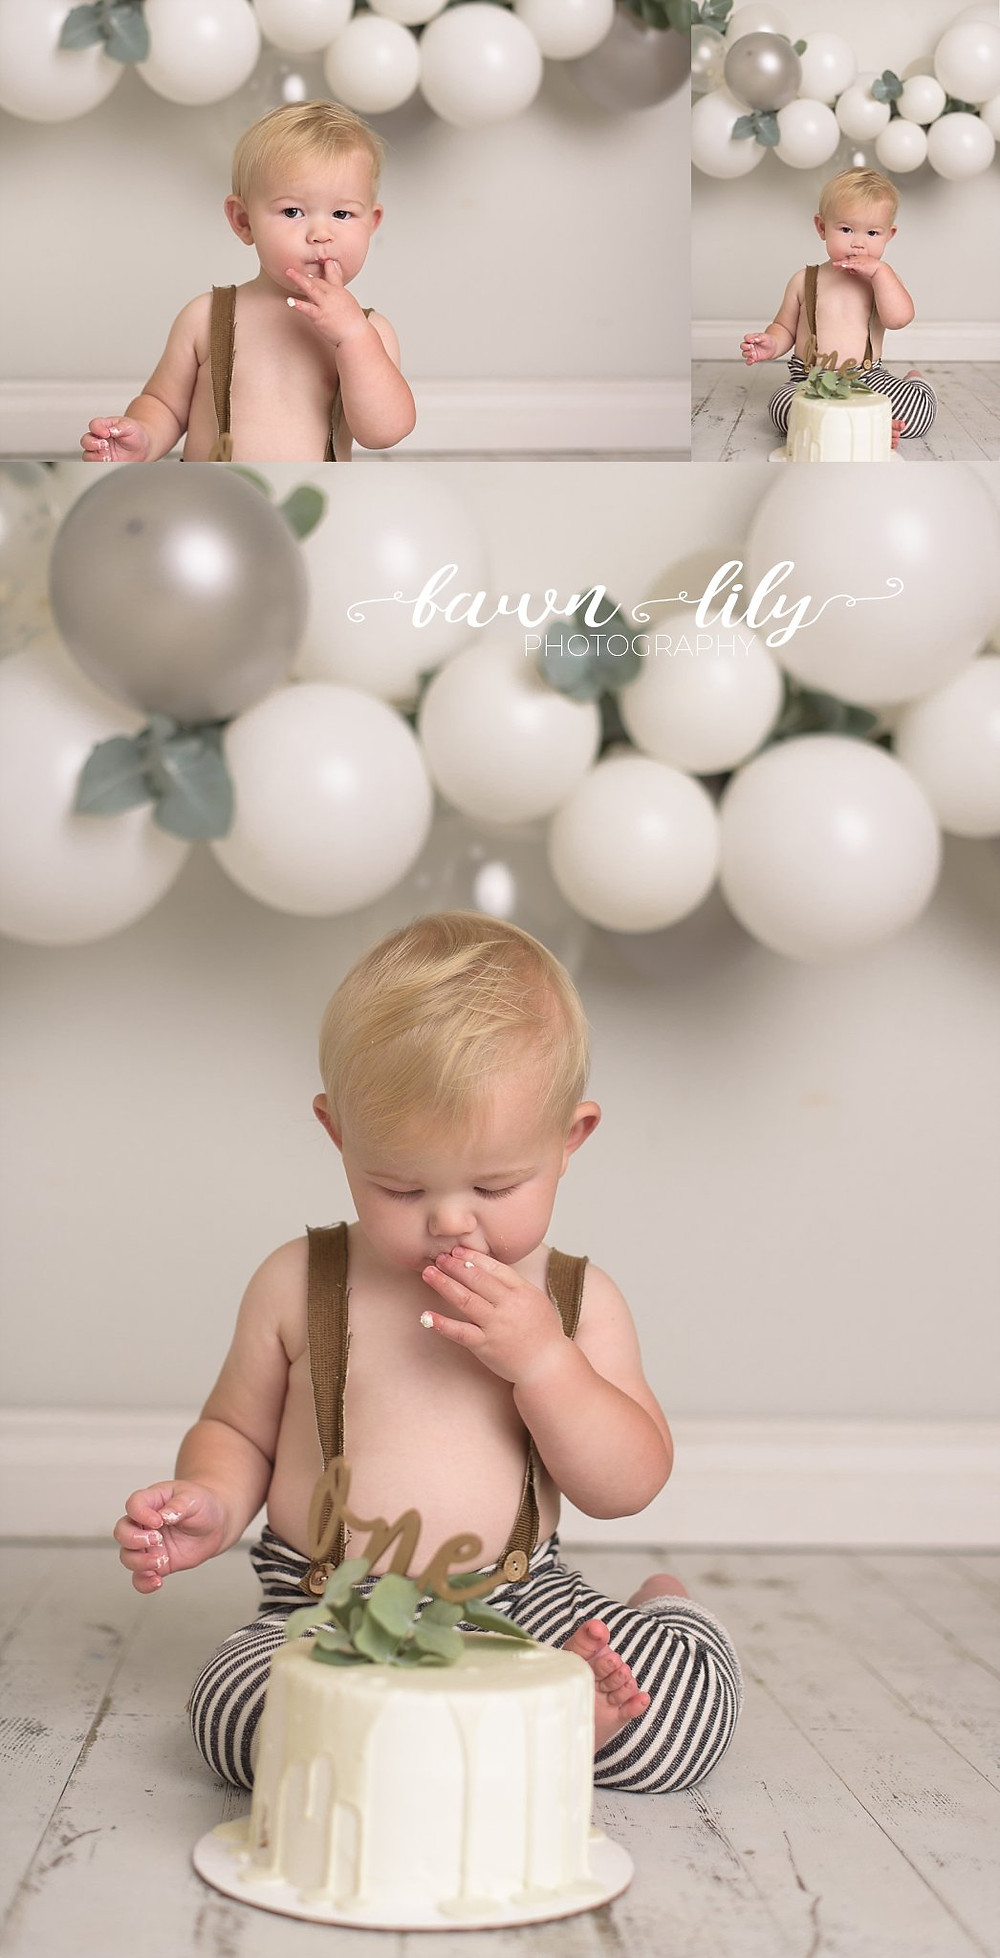 Victoria BC Cake Smash Photographer, Fawn Lily Photography, Happy Birthday Baby